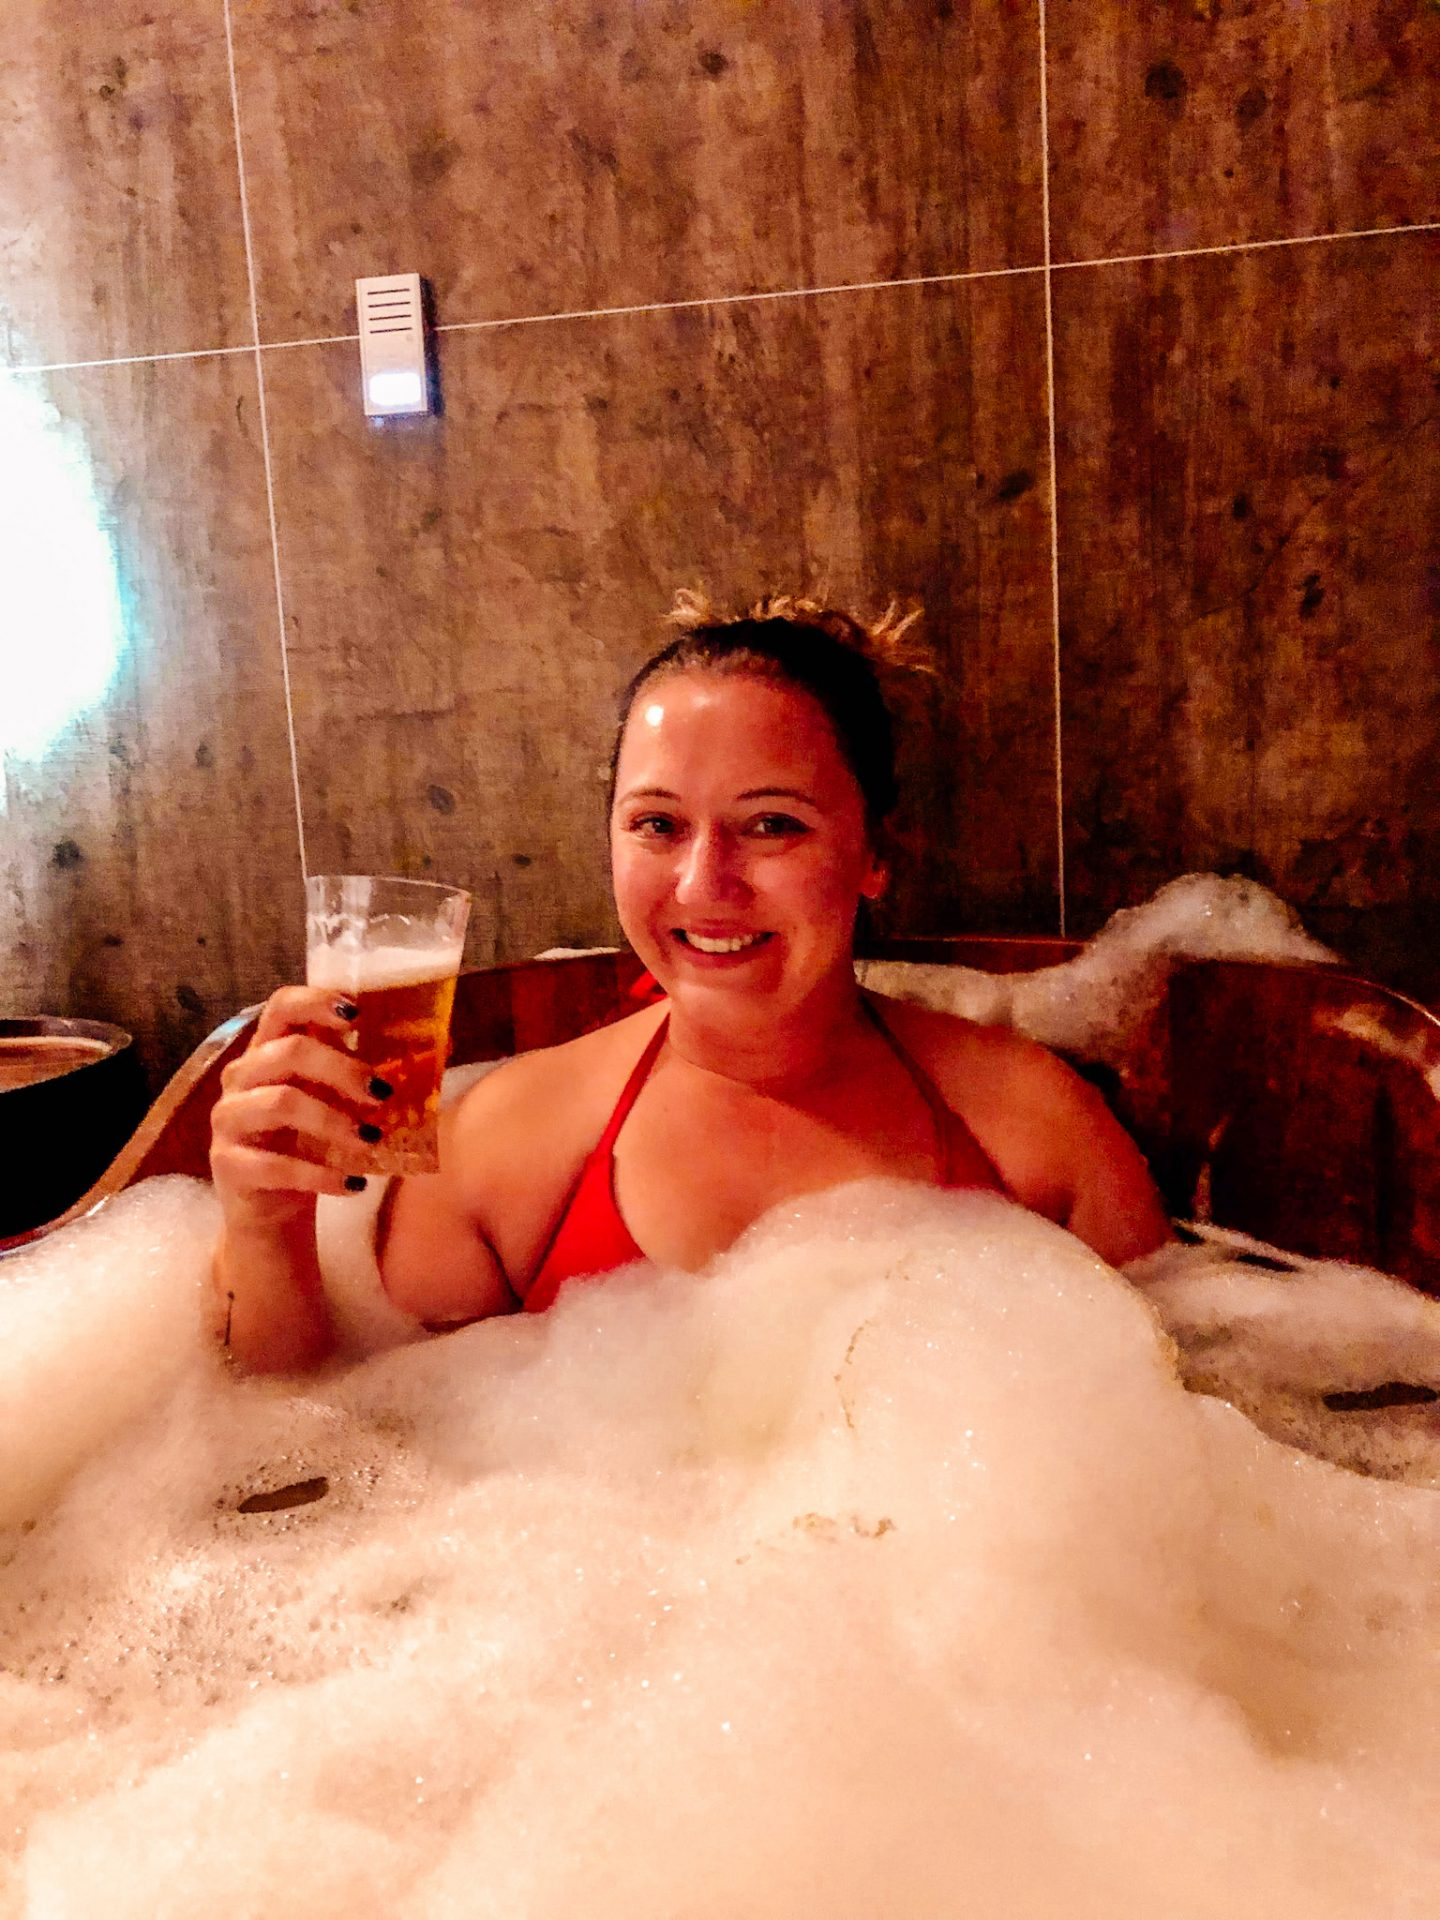 Woman sitting in beer bath with suds, wearing a red bikini holding a glass of beer and smiling.